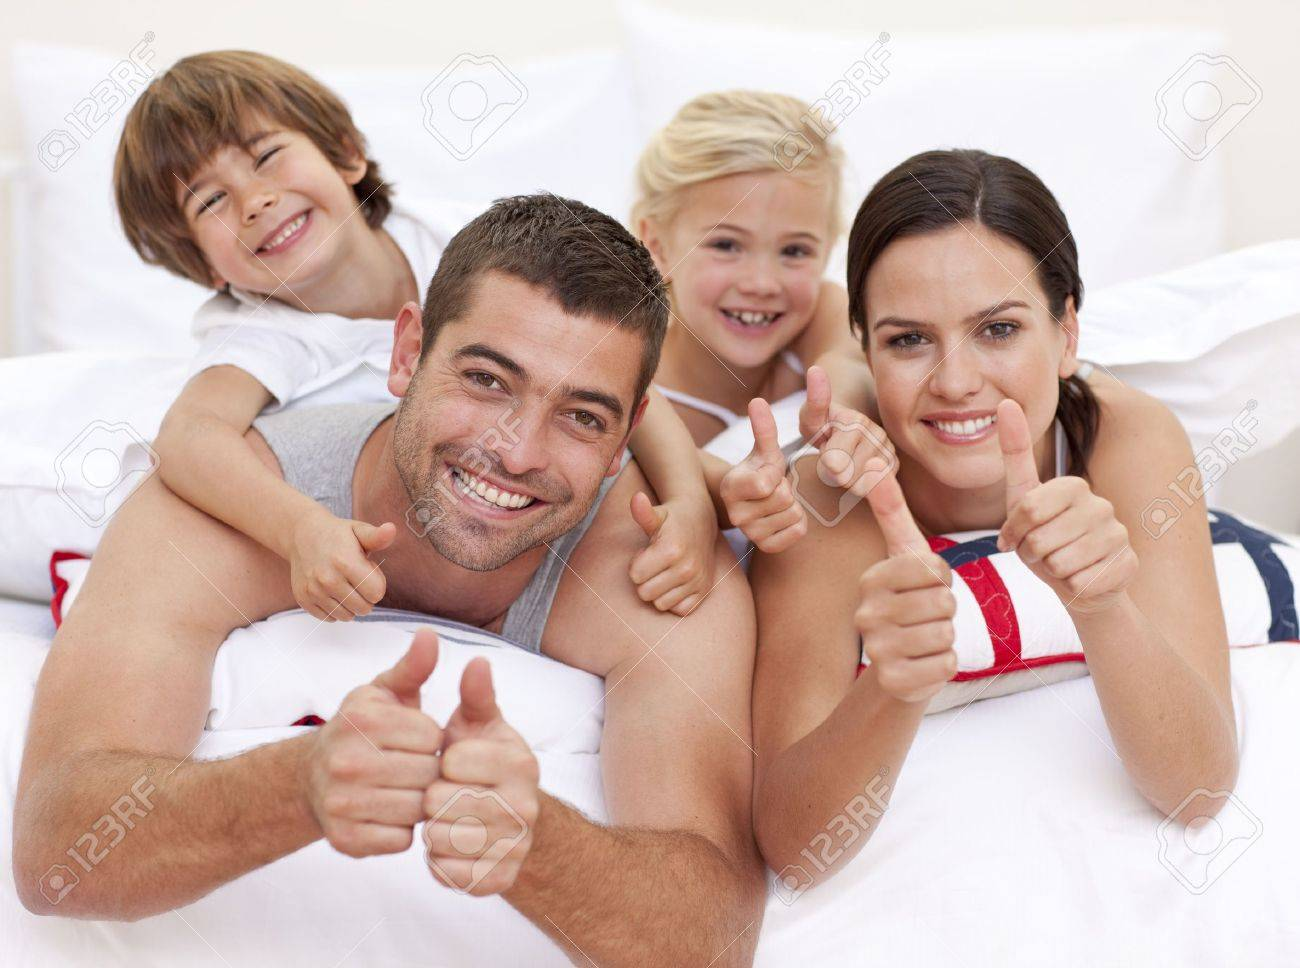 Family playing in bed with thumbs up Stock Photo - 10131632